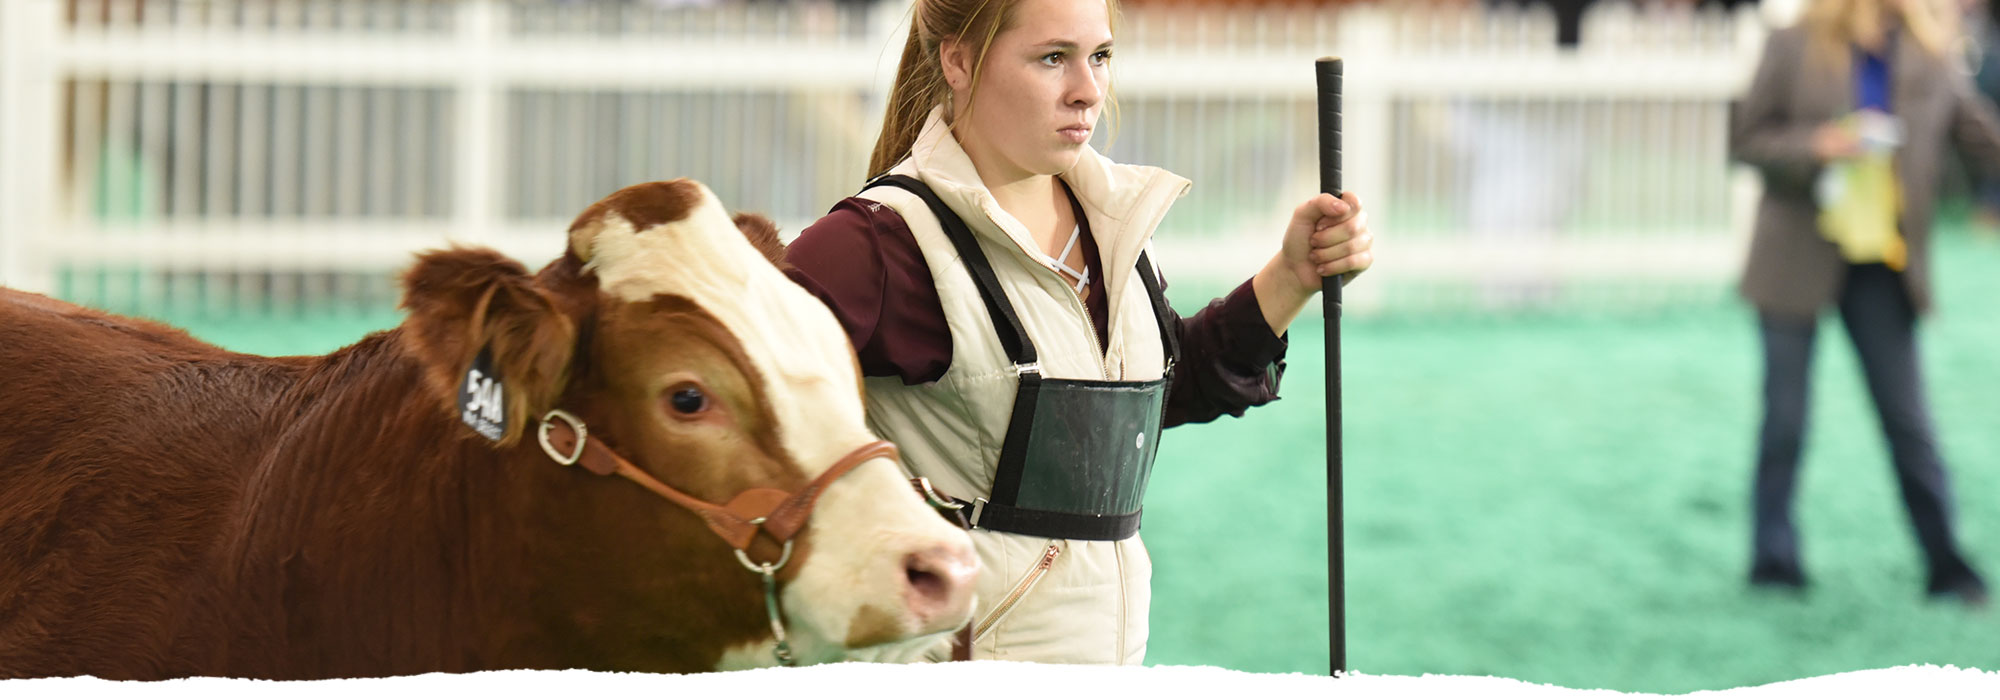 A young girl leads a cattle during a competition.